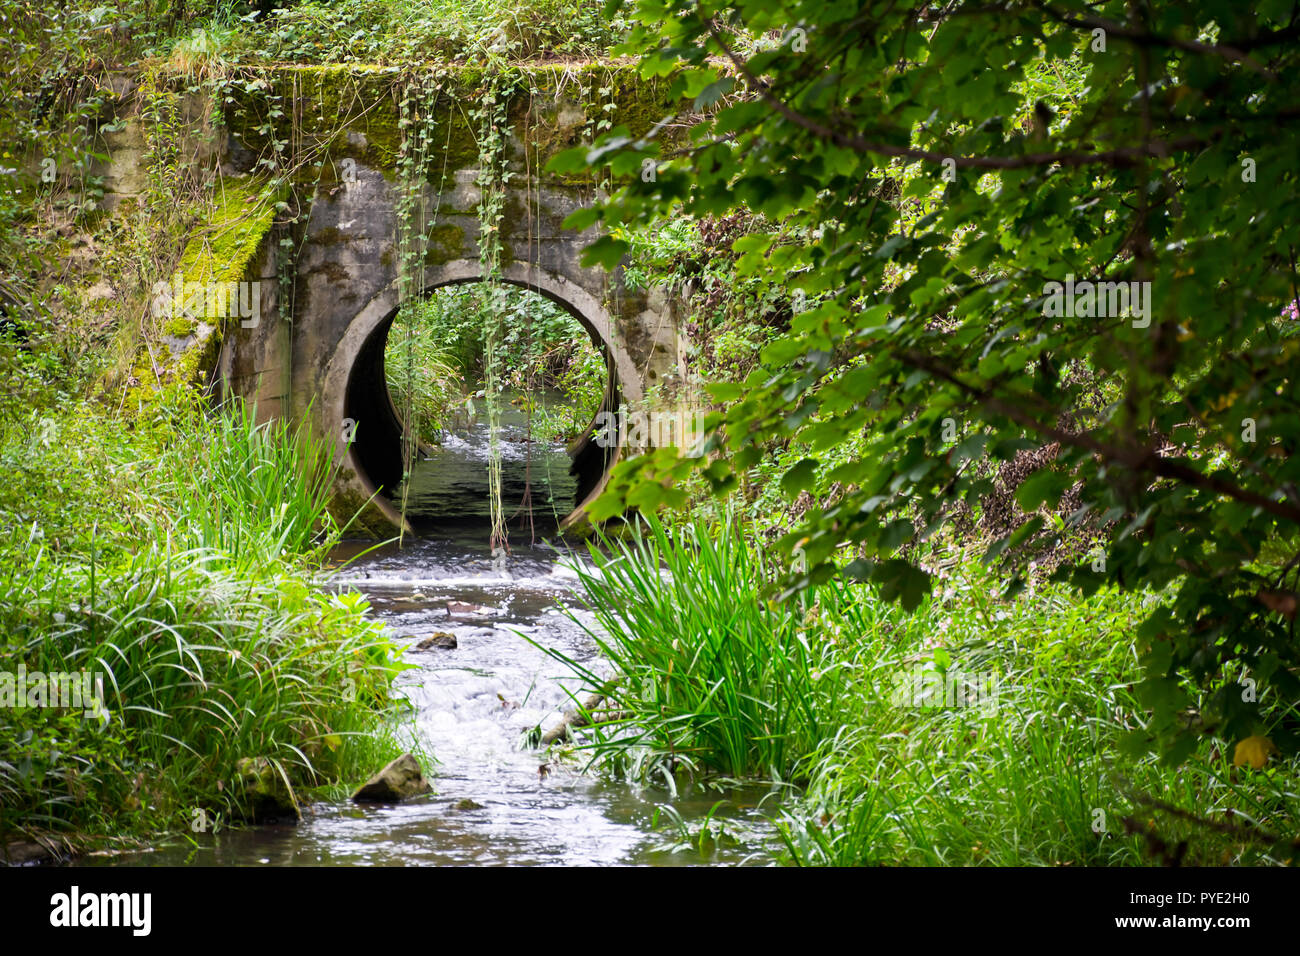 View of the stream and a road culvert at the edge of the forest. - Stock Image